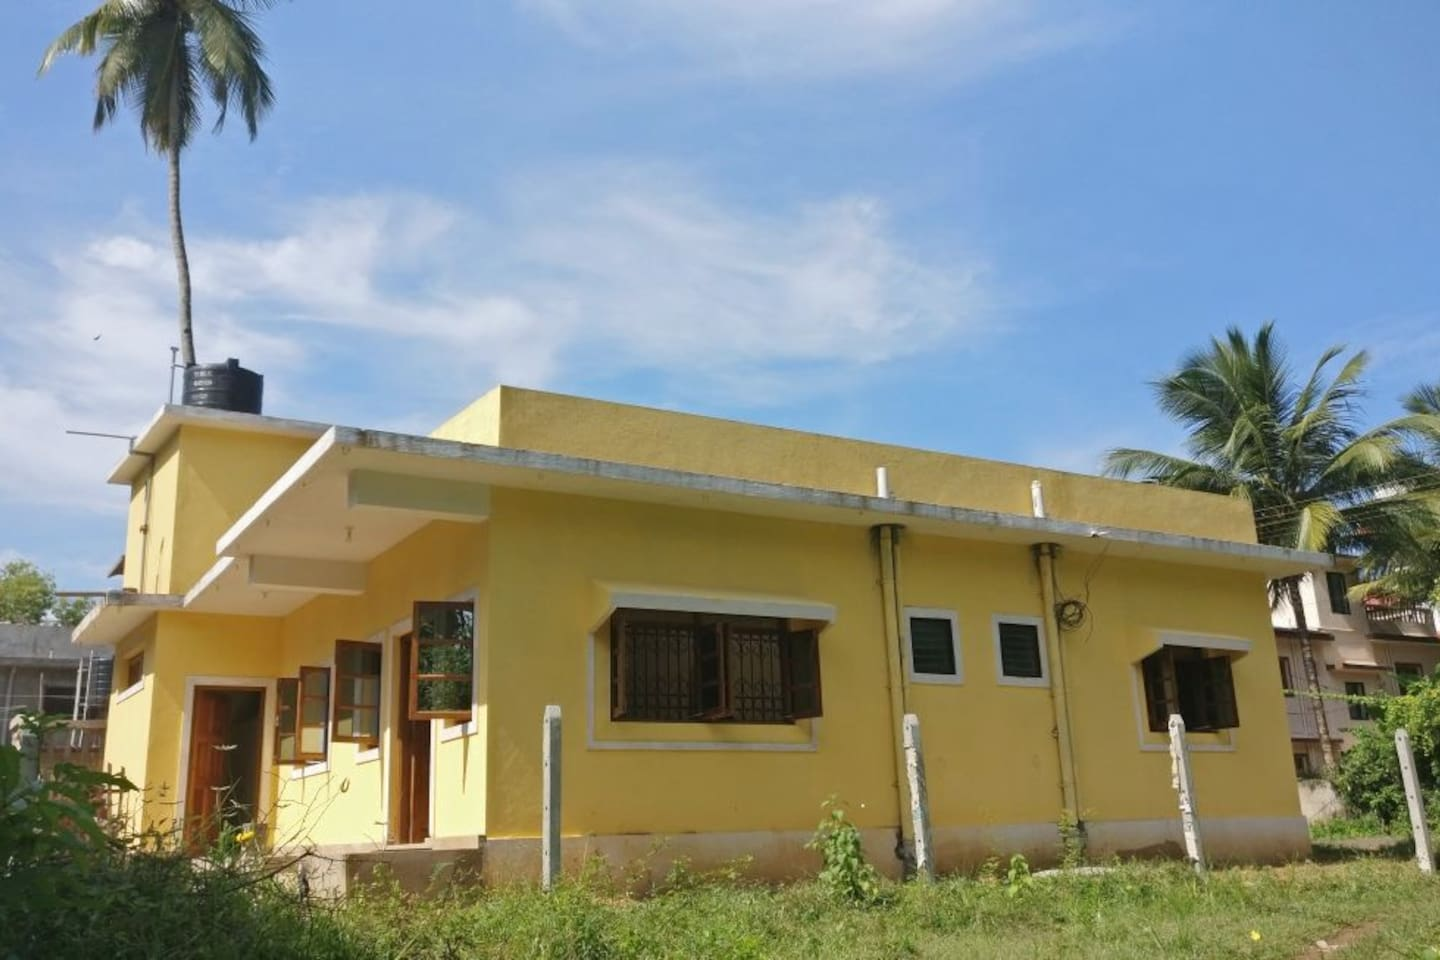 We are a quiet family, looking to host travelers visiting Goa to enjoy the culture and local cuisine.Our house is located in a quite village of Arpora, in a peaceful and serene locale. It is 5 minutes away from the Arpora Junction and very close to the local Arpora Market.